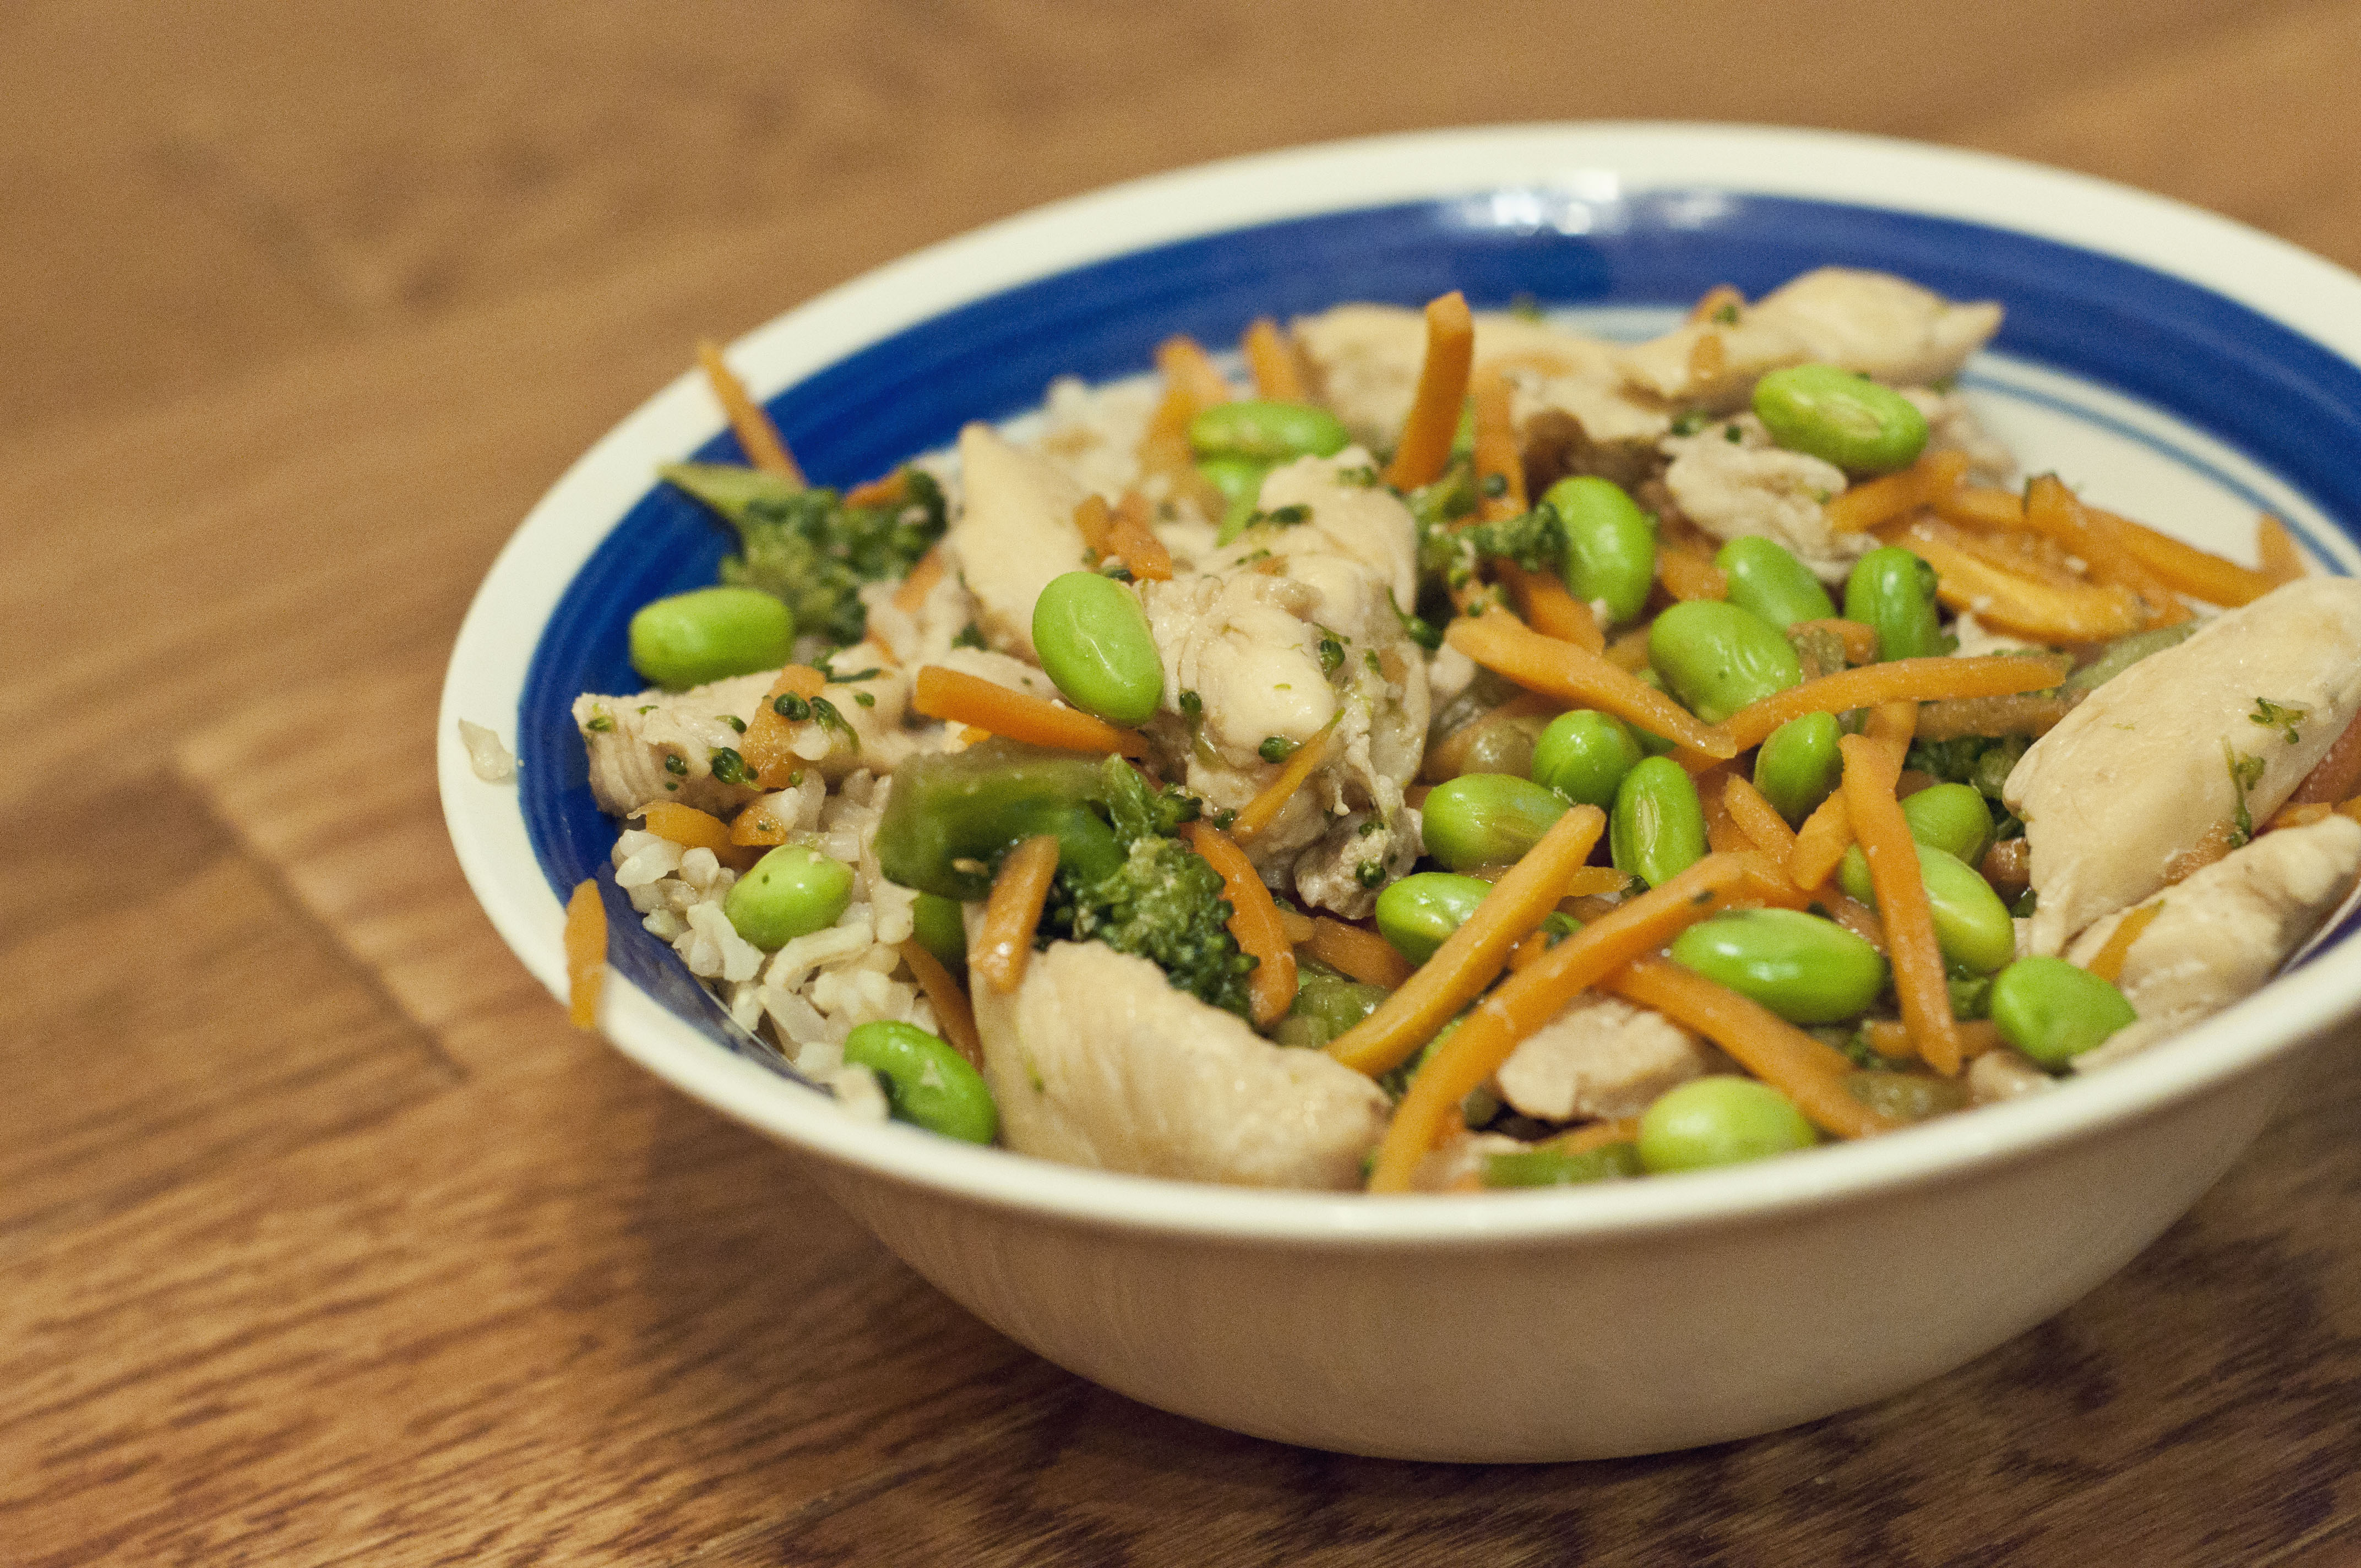 chicken, chicken recipe, teriyaki recipe, recipe, cooking, food, taste arkansas, arkansas rice, agriculture, dinner, easy recipe, easy chicken teriyaki rice bowl recipe, edamame,